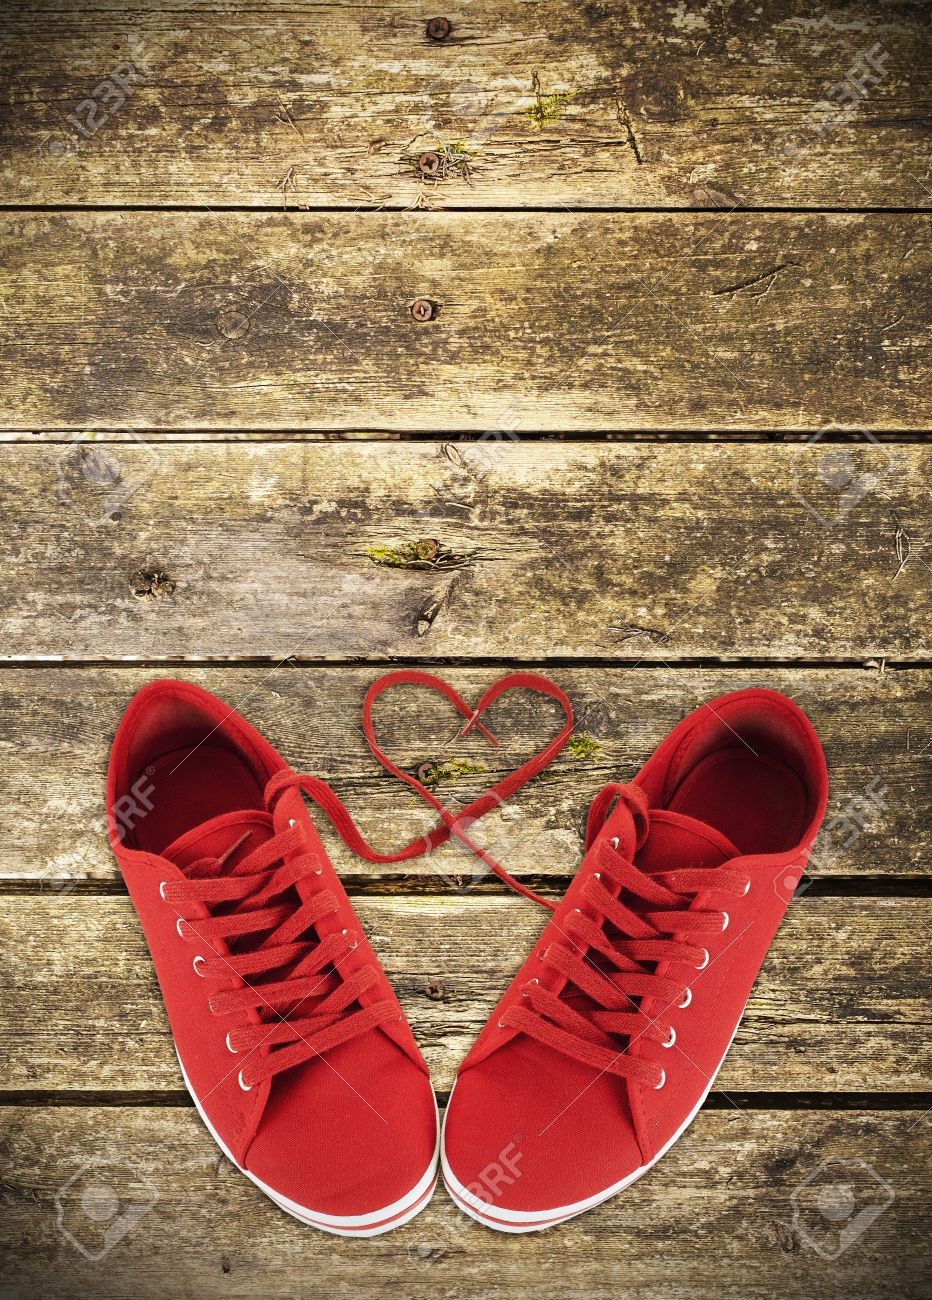 Heart Shaped Red Shoelaces Of Sneakers On Wooden Deck Stock Photo